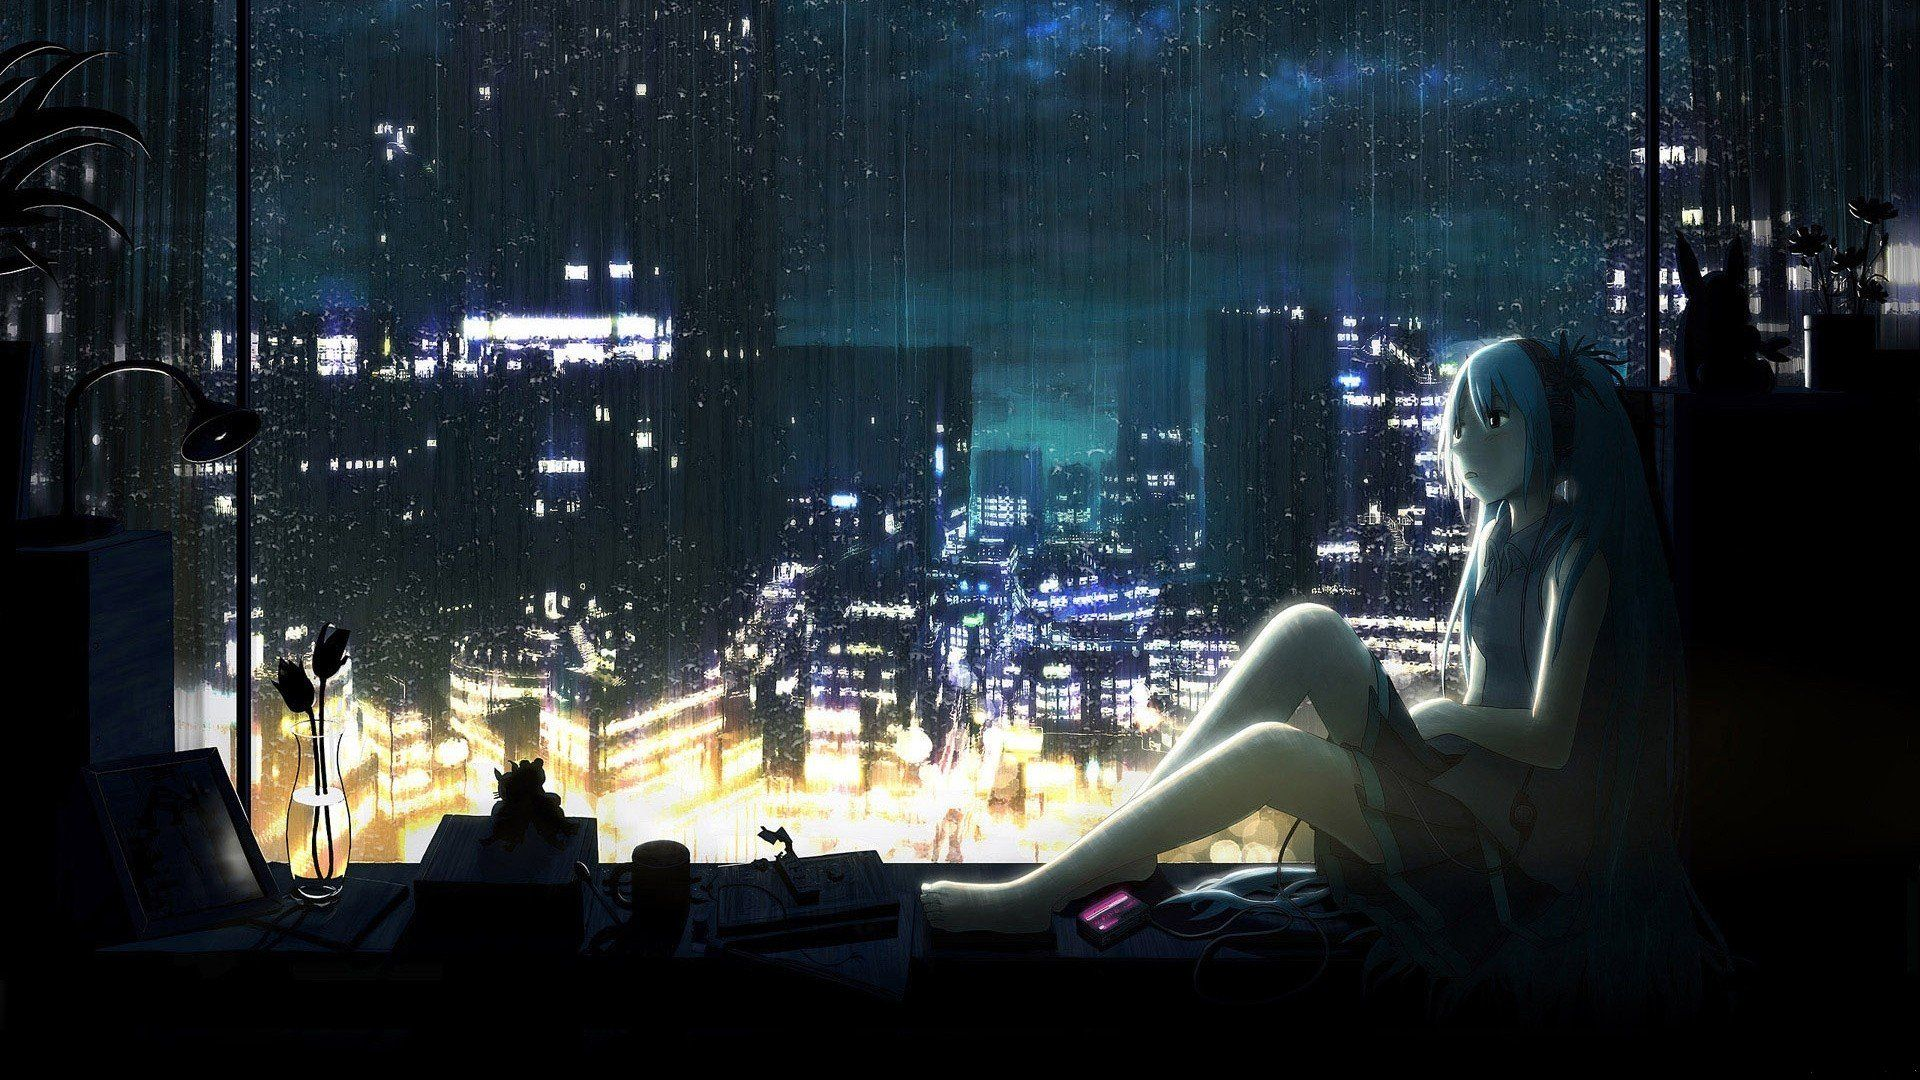 Dark Anime Scenery Wallpapers High Definition With High